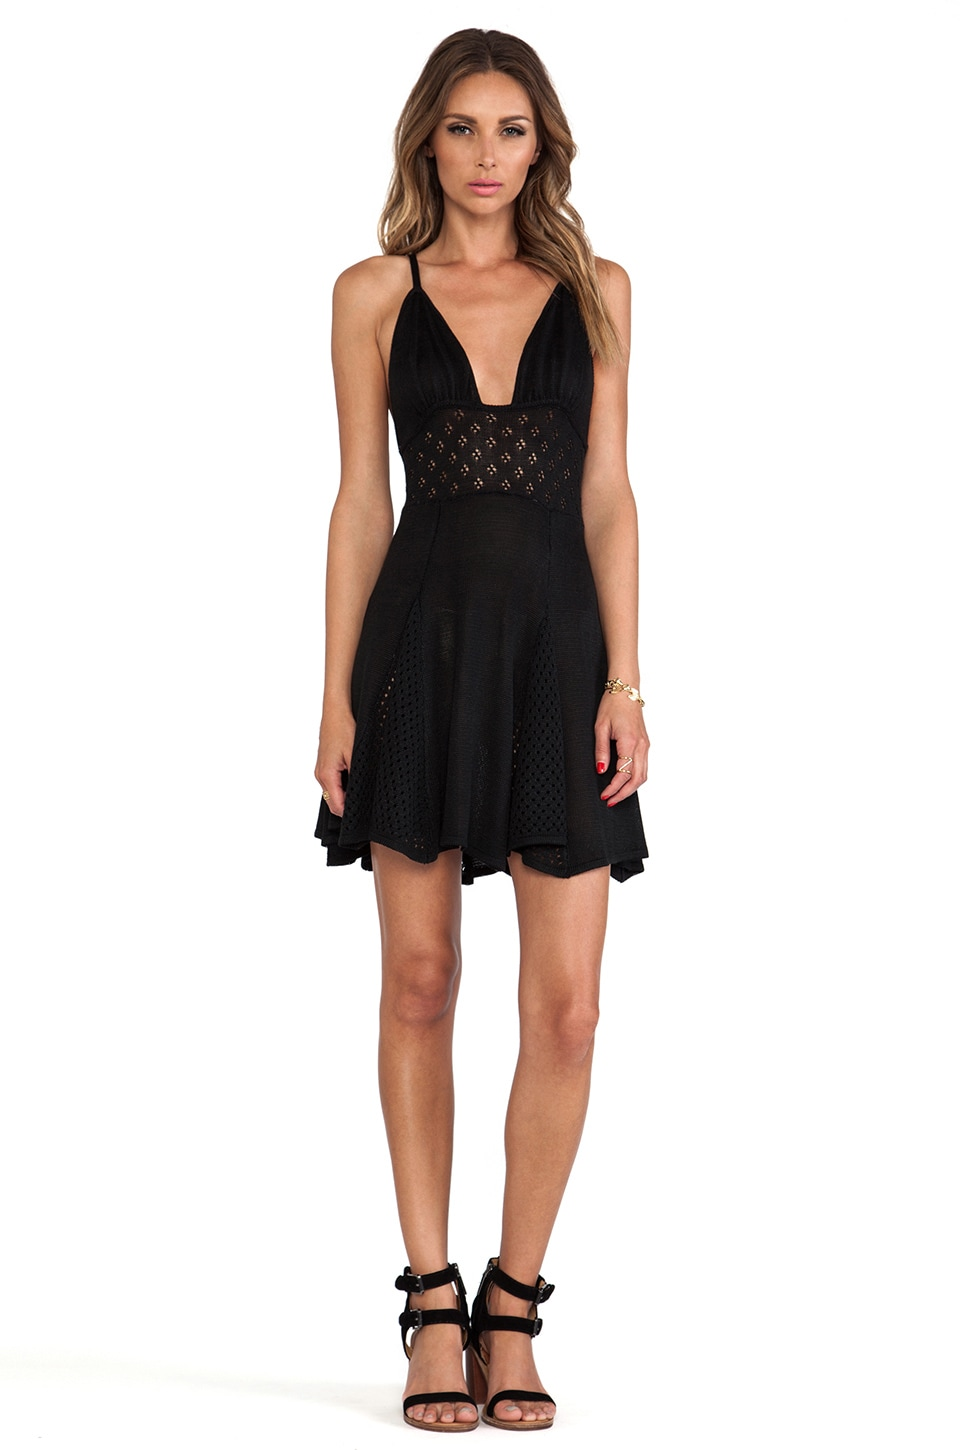 For Love & Lemons Dolly Knit Dress in Black